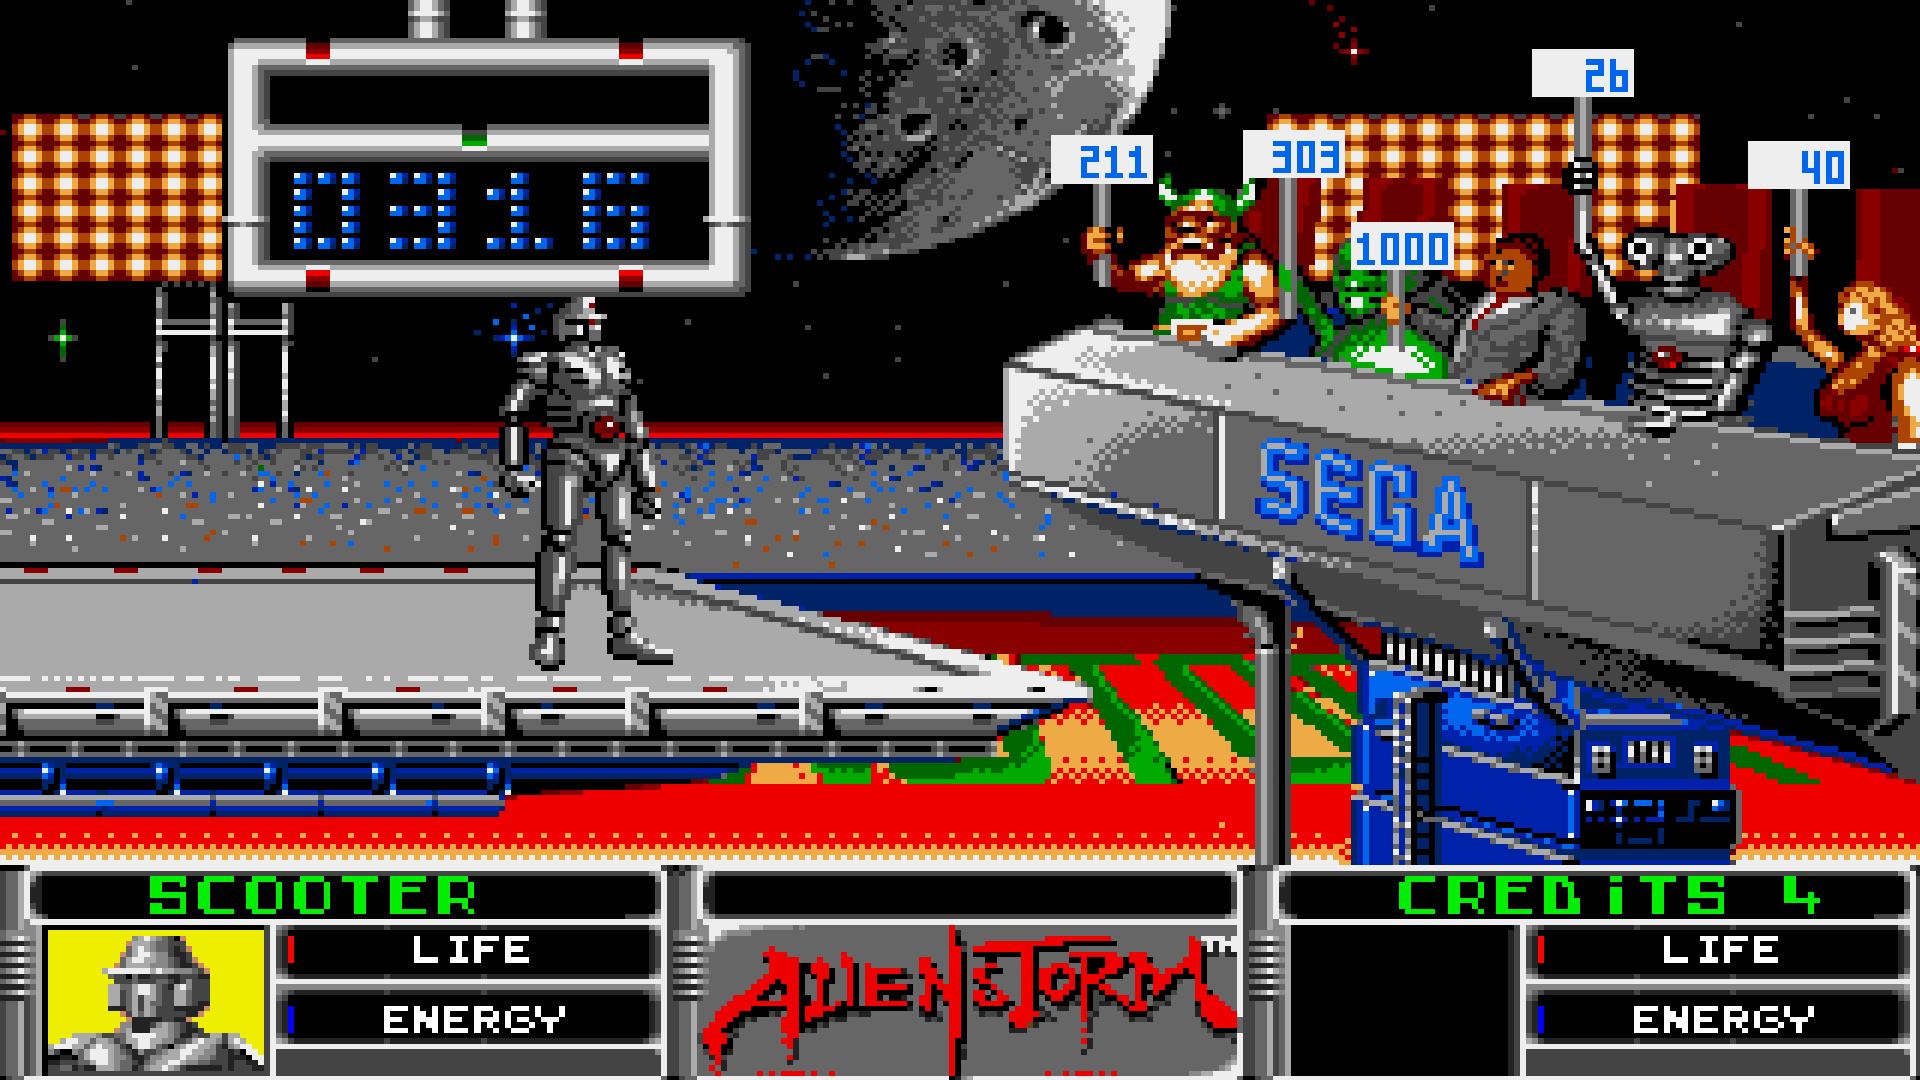 TheTrickster: Alien Storm (Amiga Emulated) 316 points on 2015-07-12 03:10:33